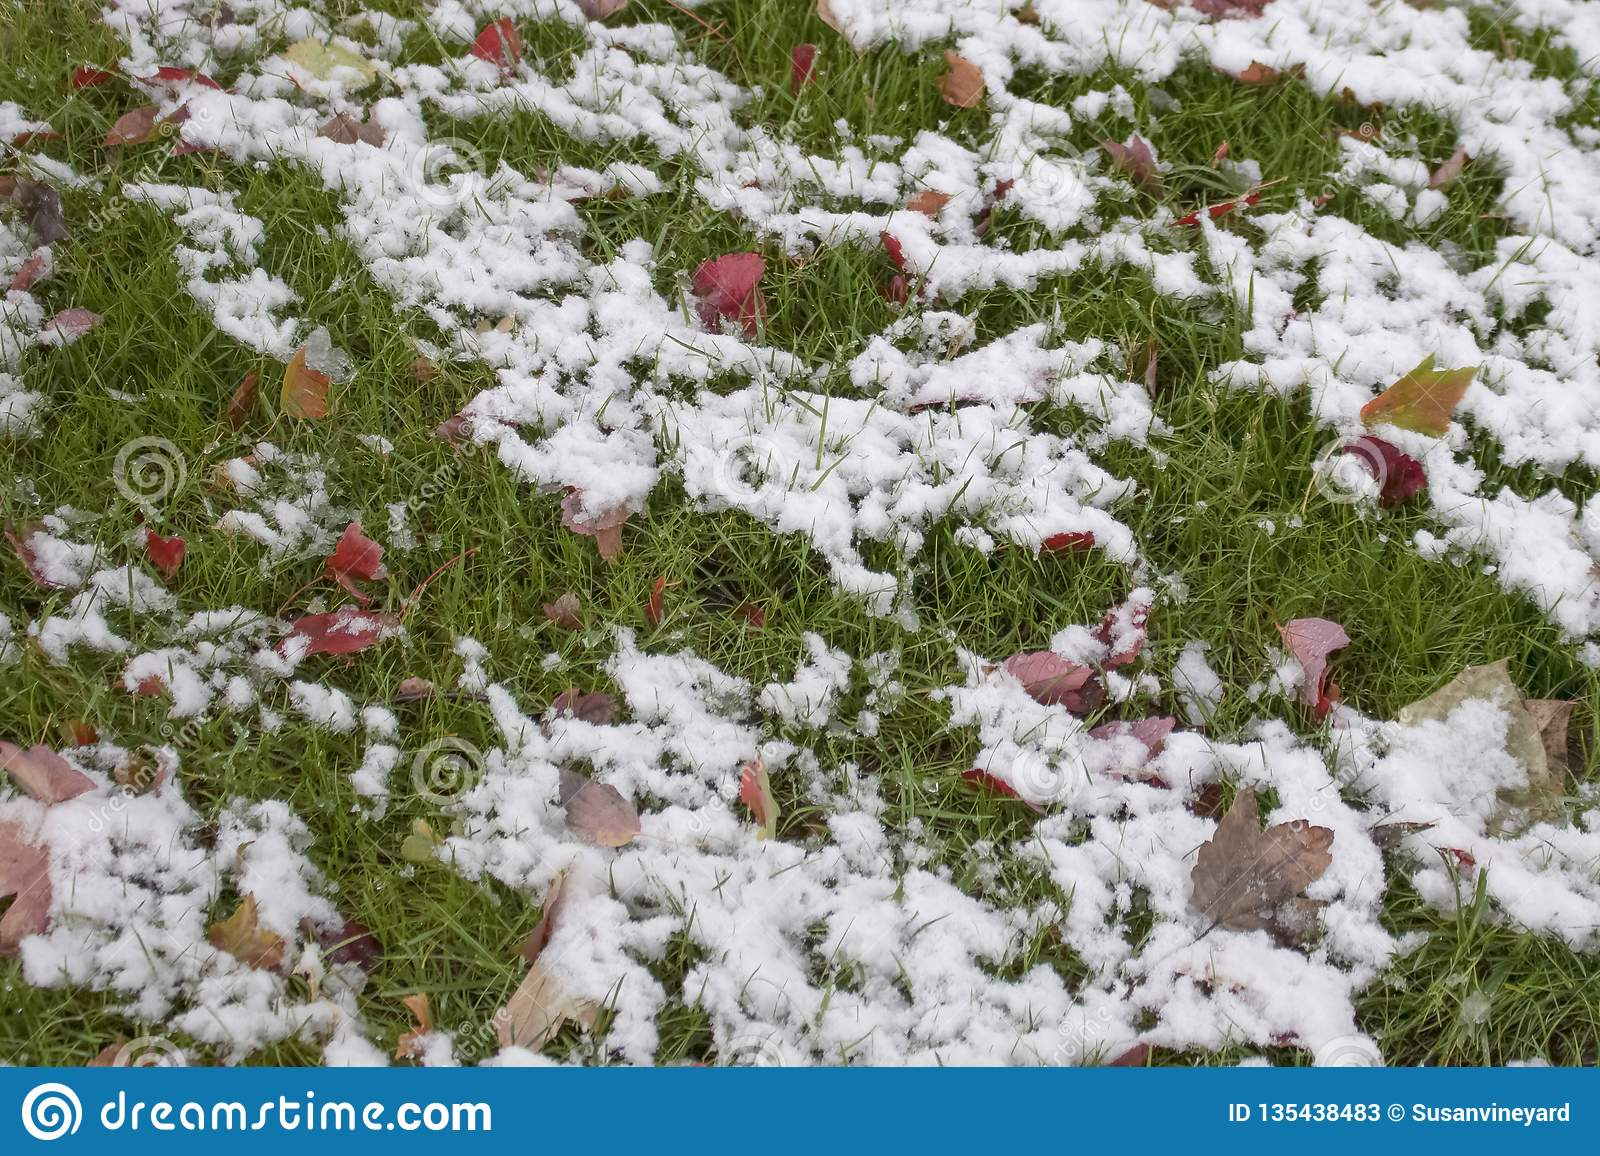 Melting snow on green grass and brightly colored autumn leaves - background